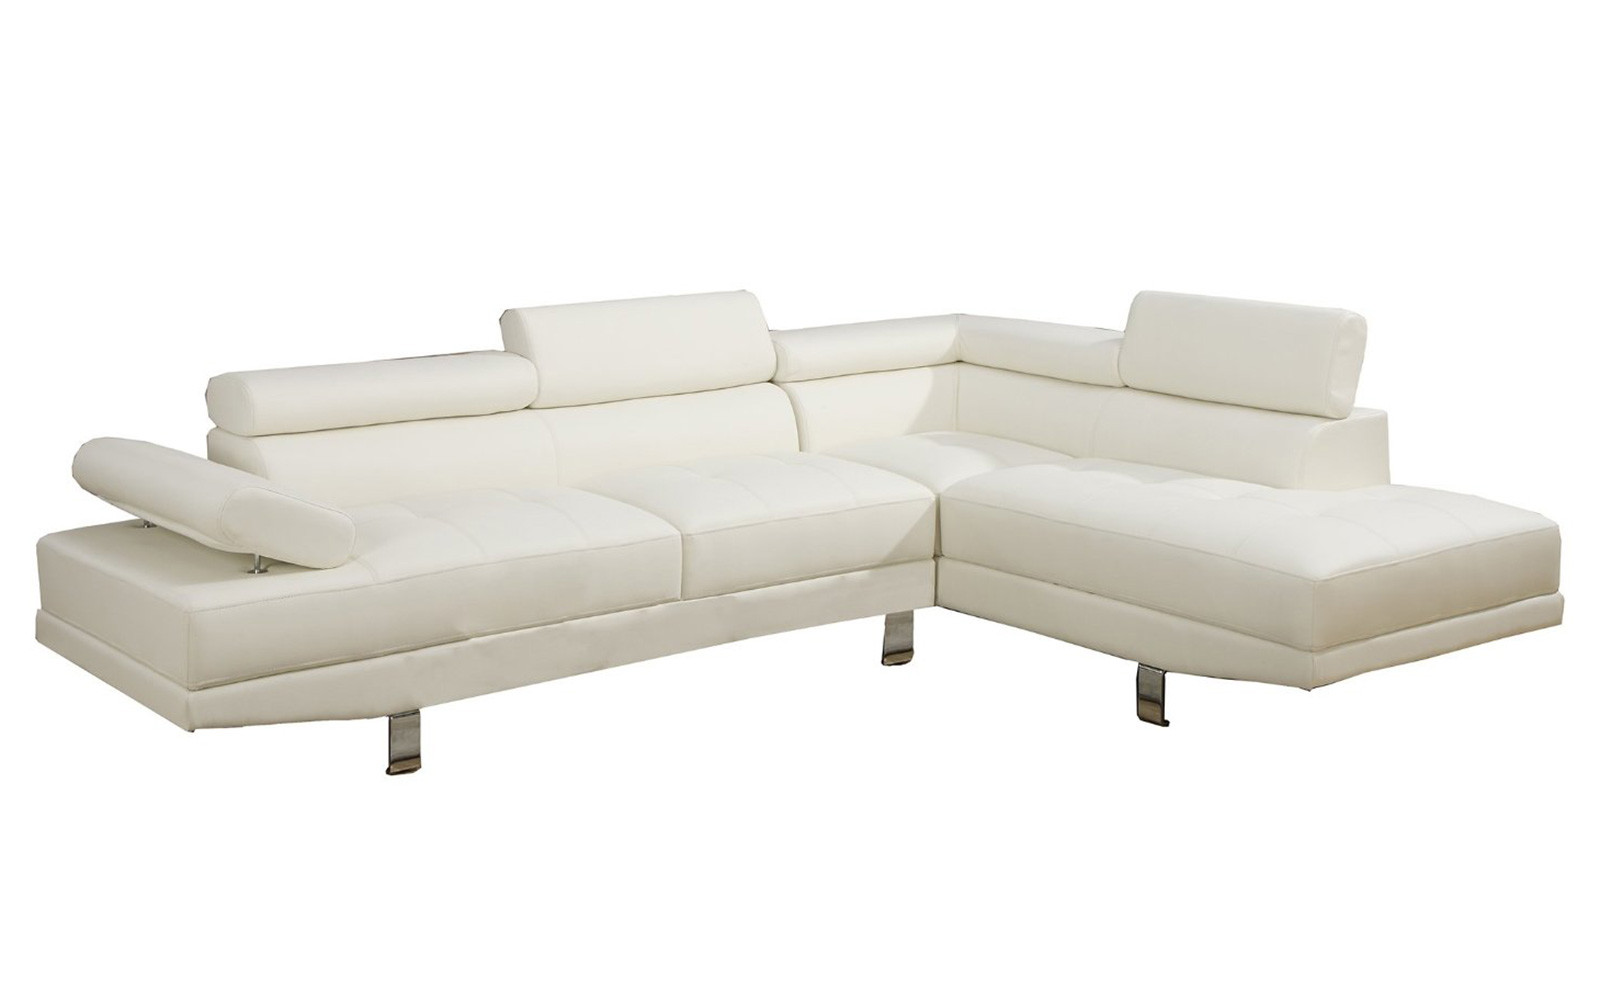 Modern Contemporary Faux Leather Mircrofiber Sectional Sofa White Walmart Com Walmart Com